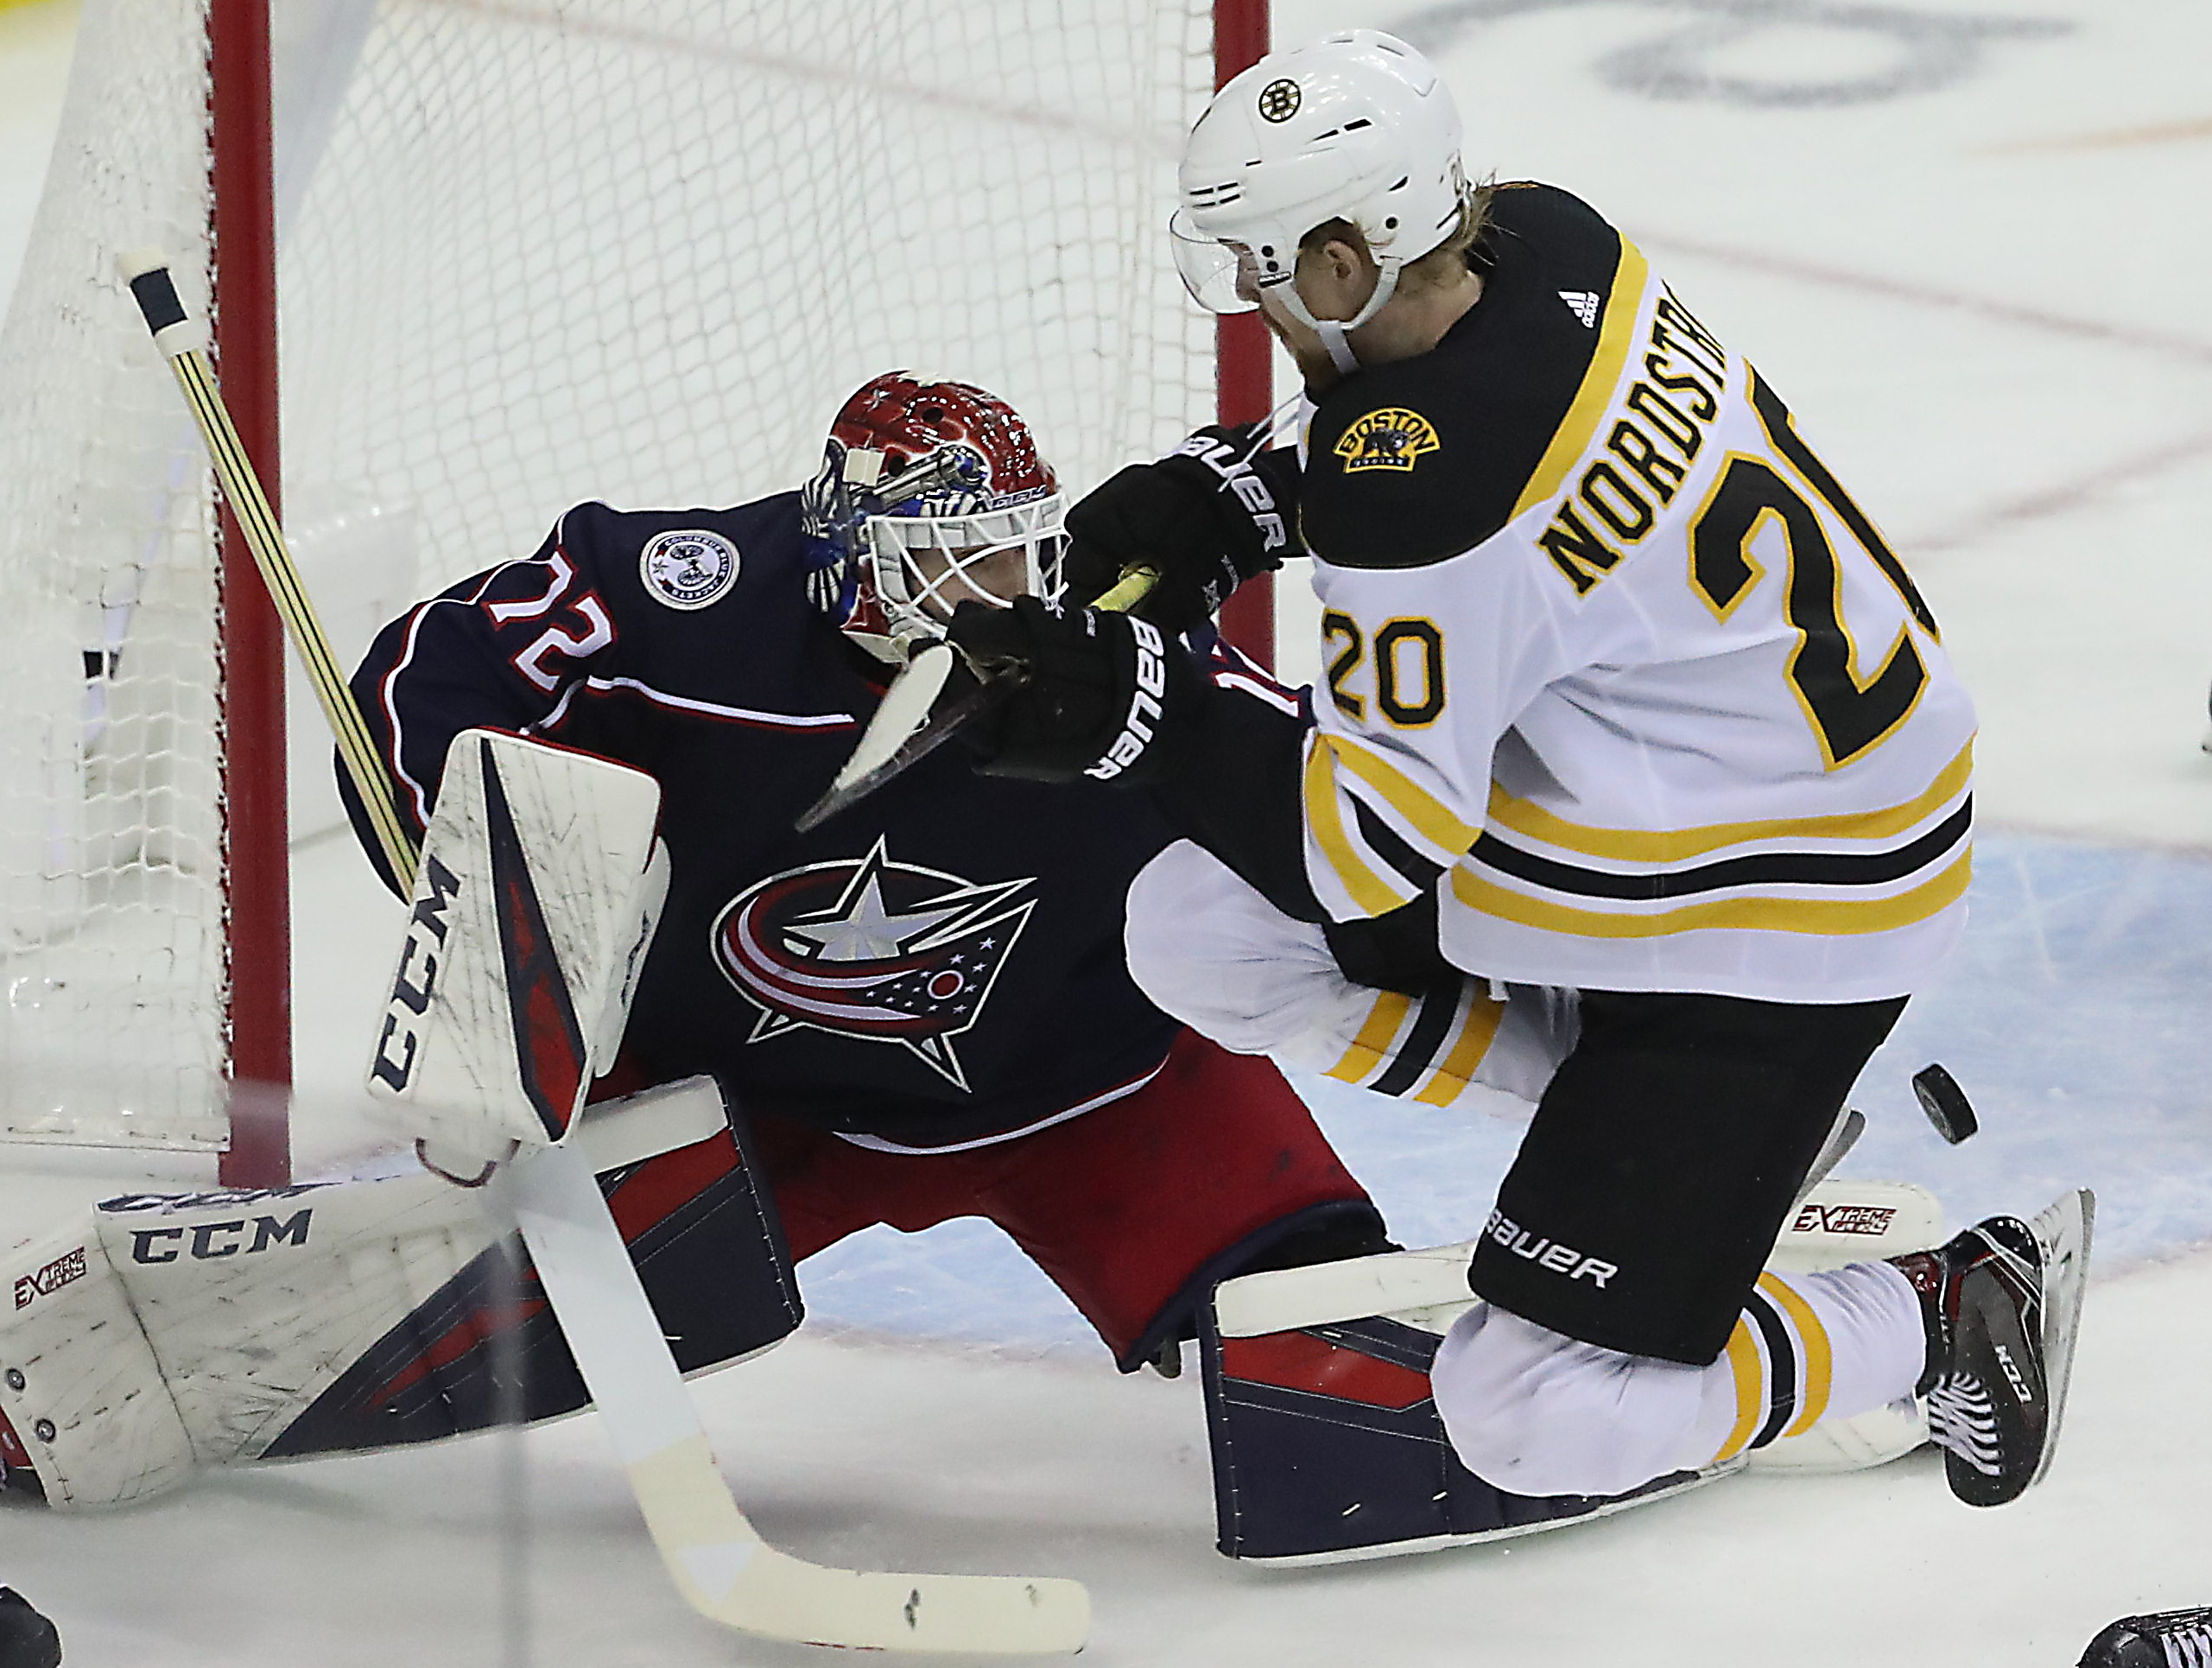 Bruins' Sean Kuraly Had Goal Disallowed After A Review